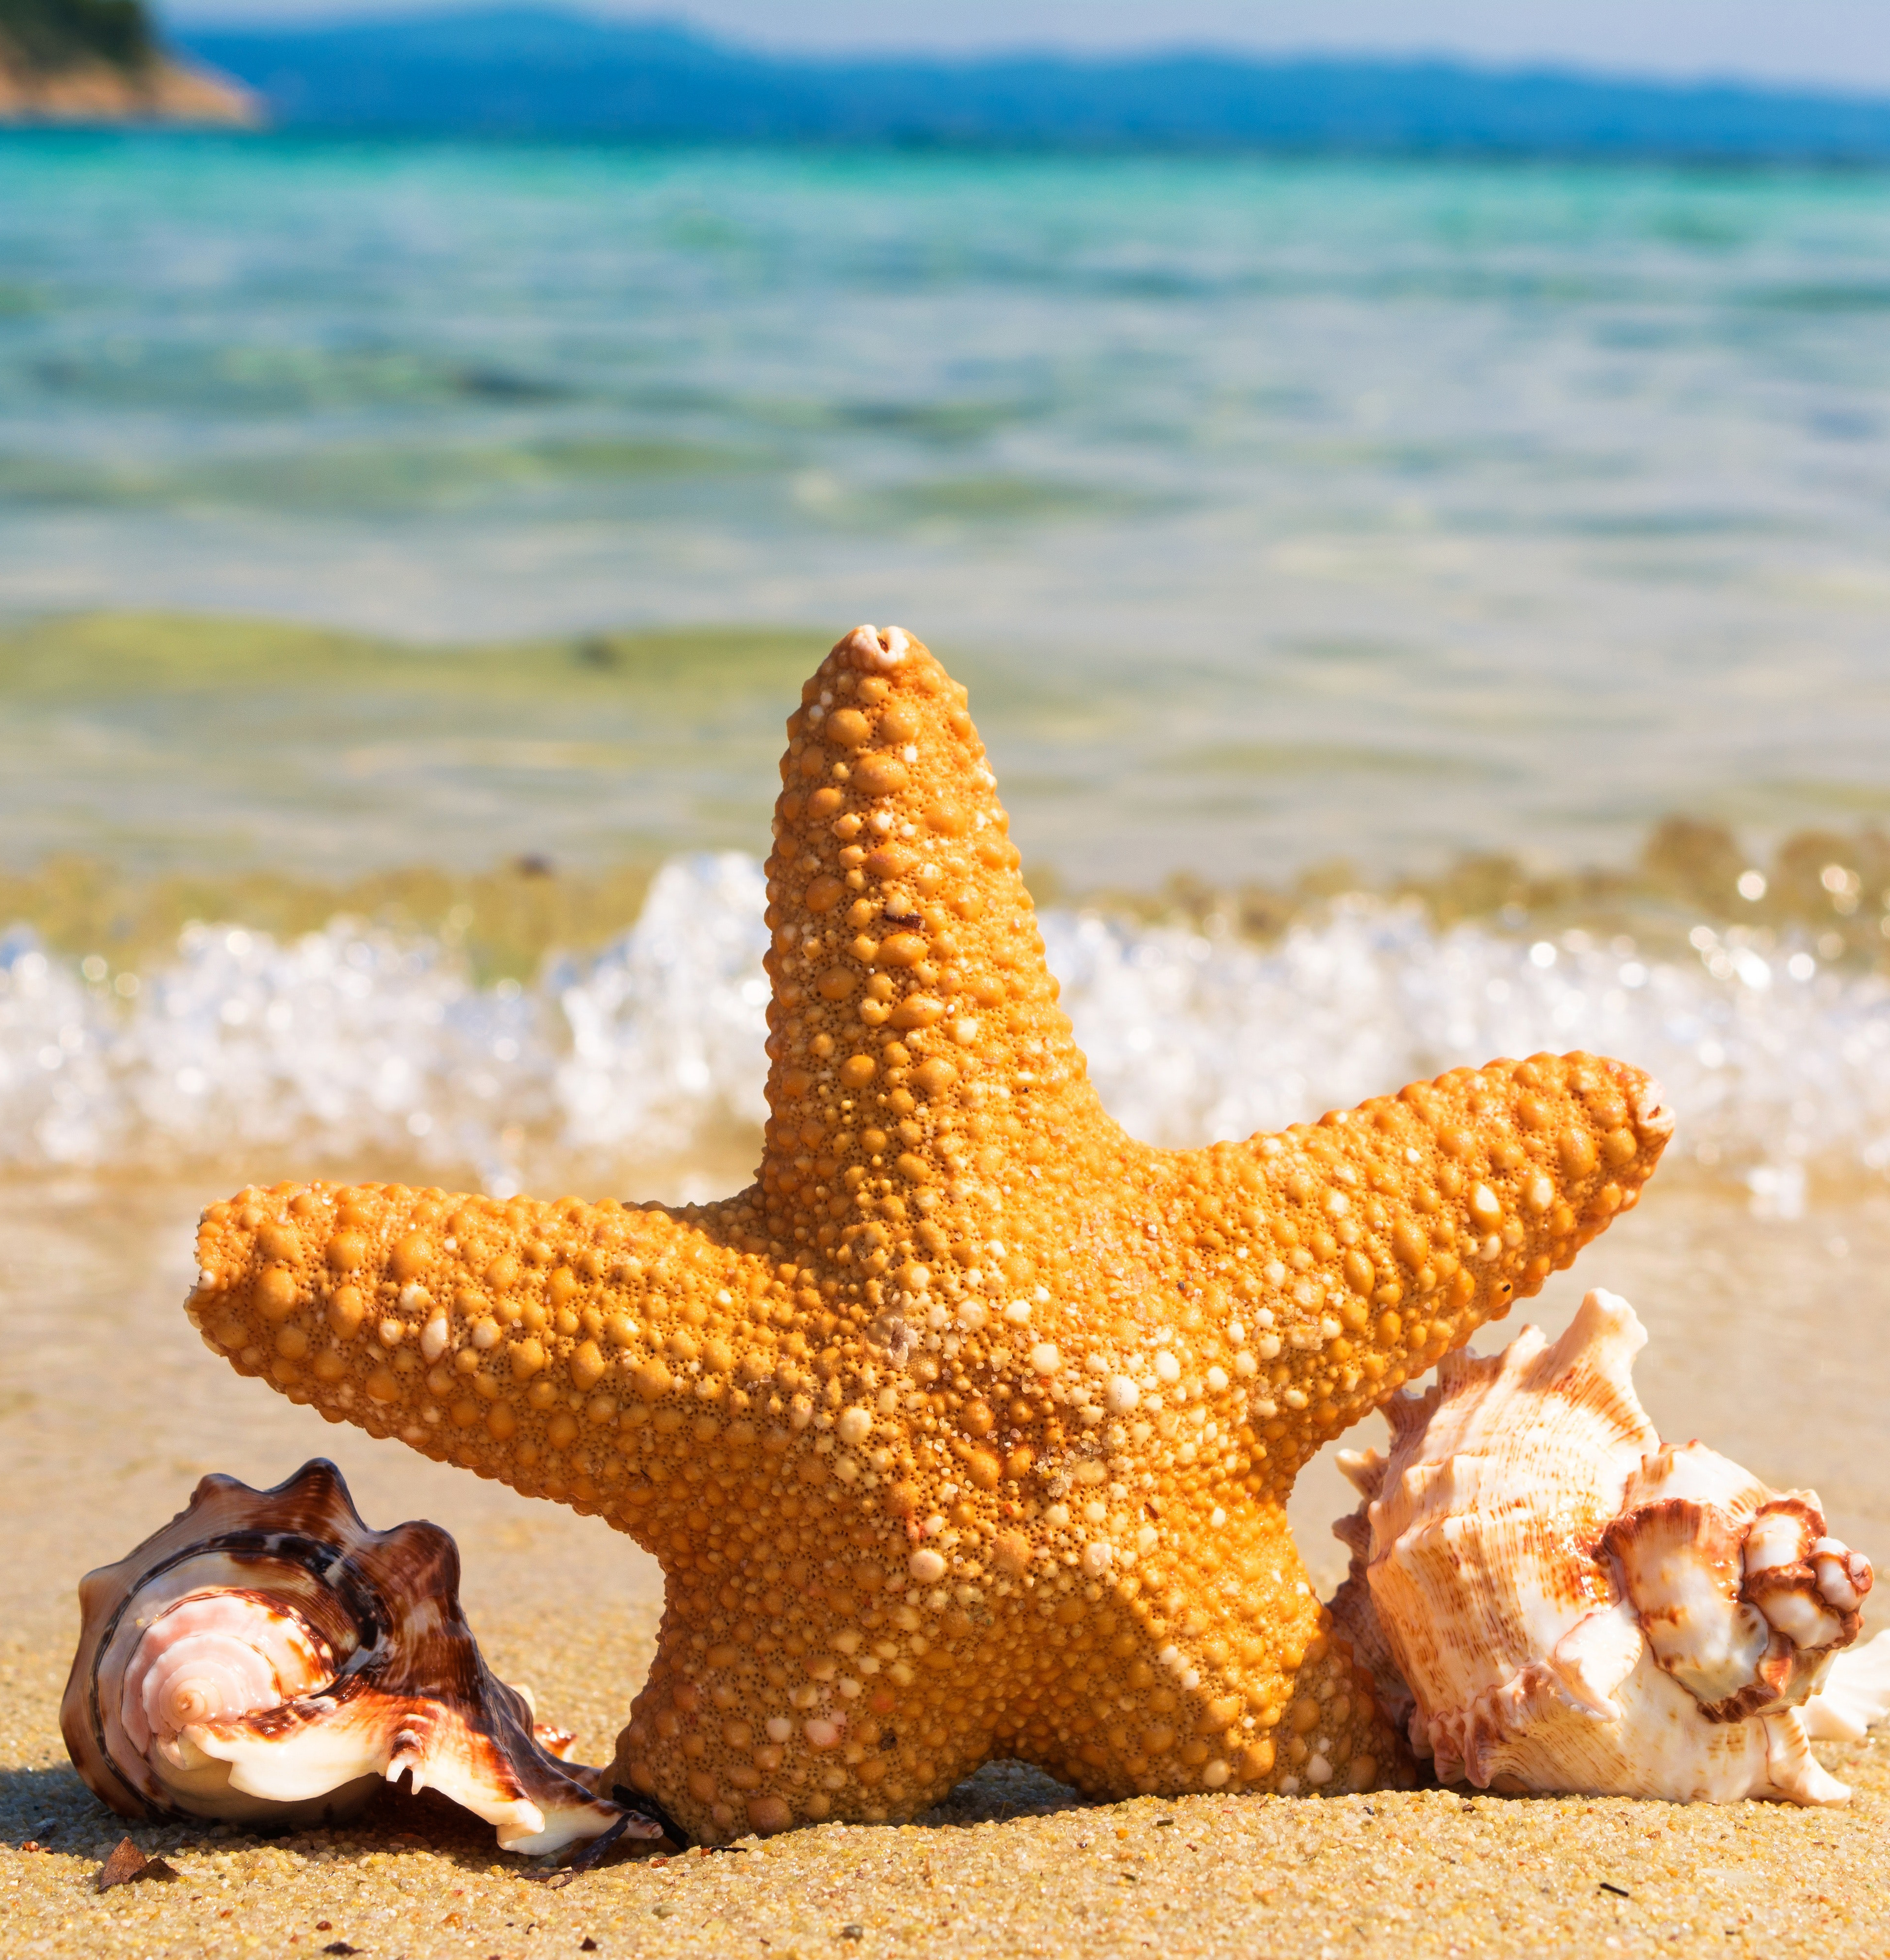 Starfish and sea shells on the beach